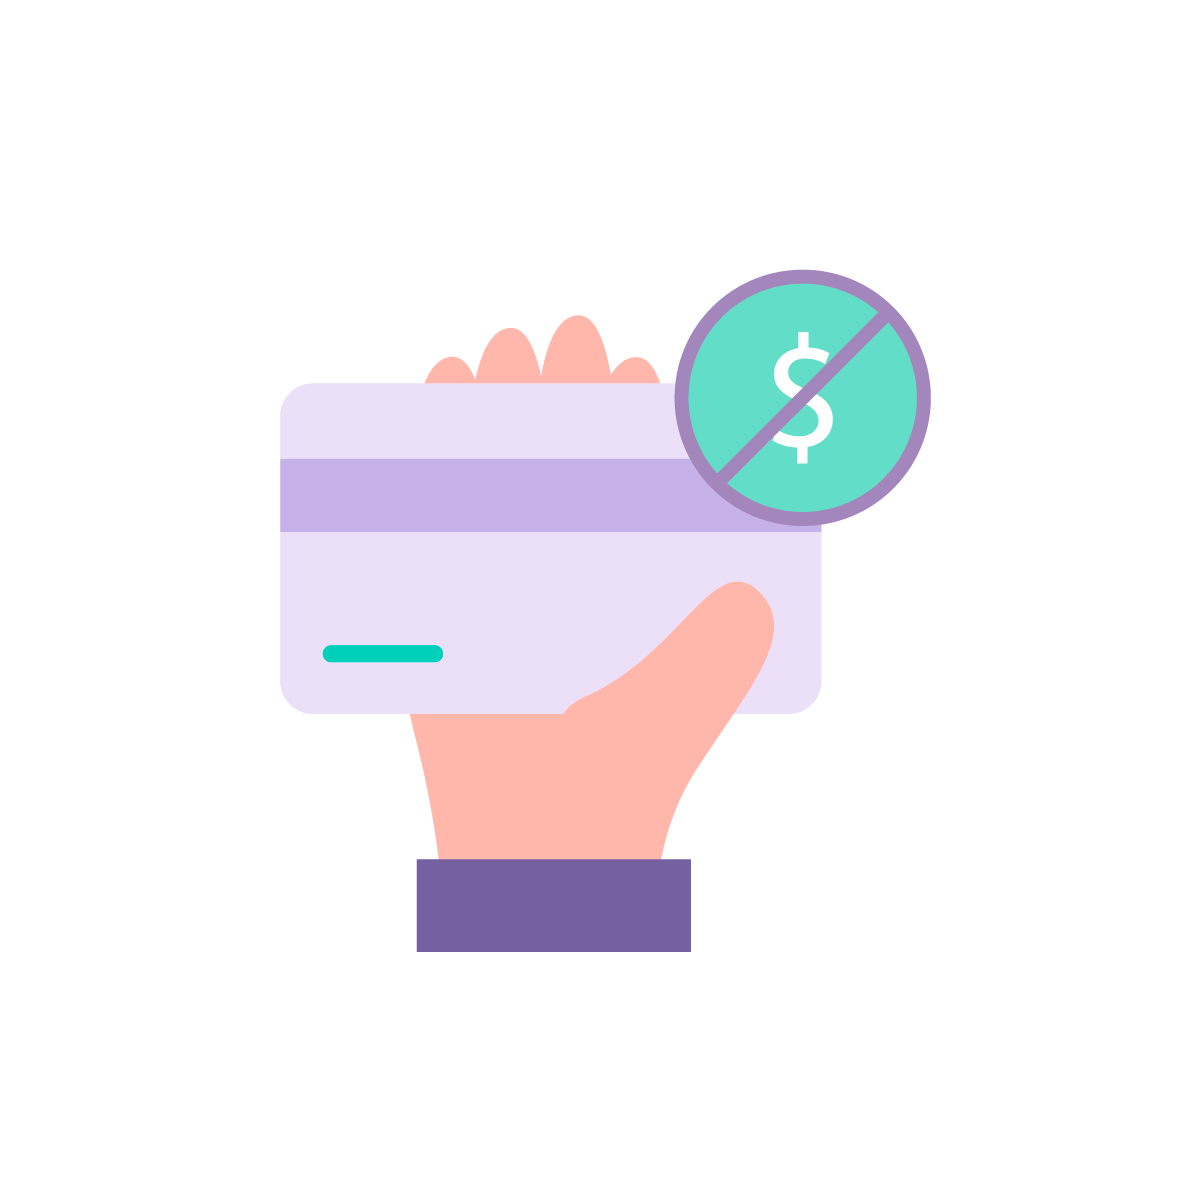 Customers do not pay fee icon